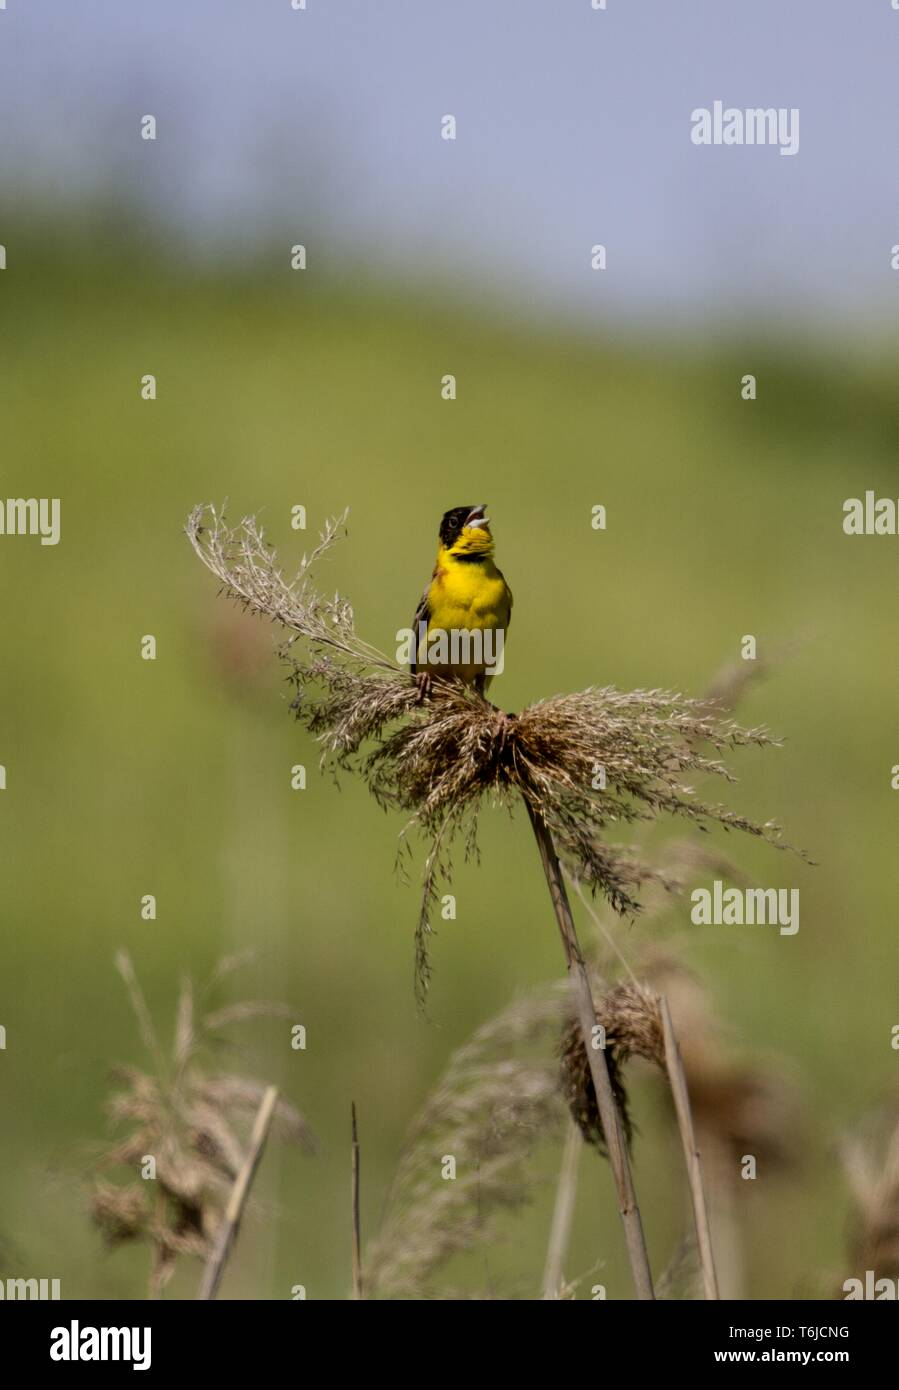 Vashlovani Managed Nature Reserve, Pistachio forest, Black-headed Bunting, Georgia - Stock Image